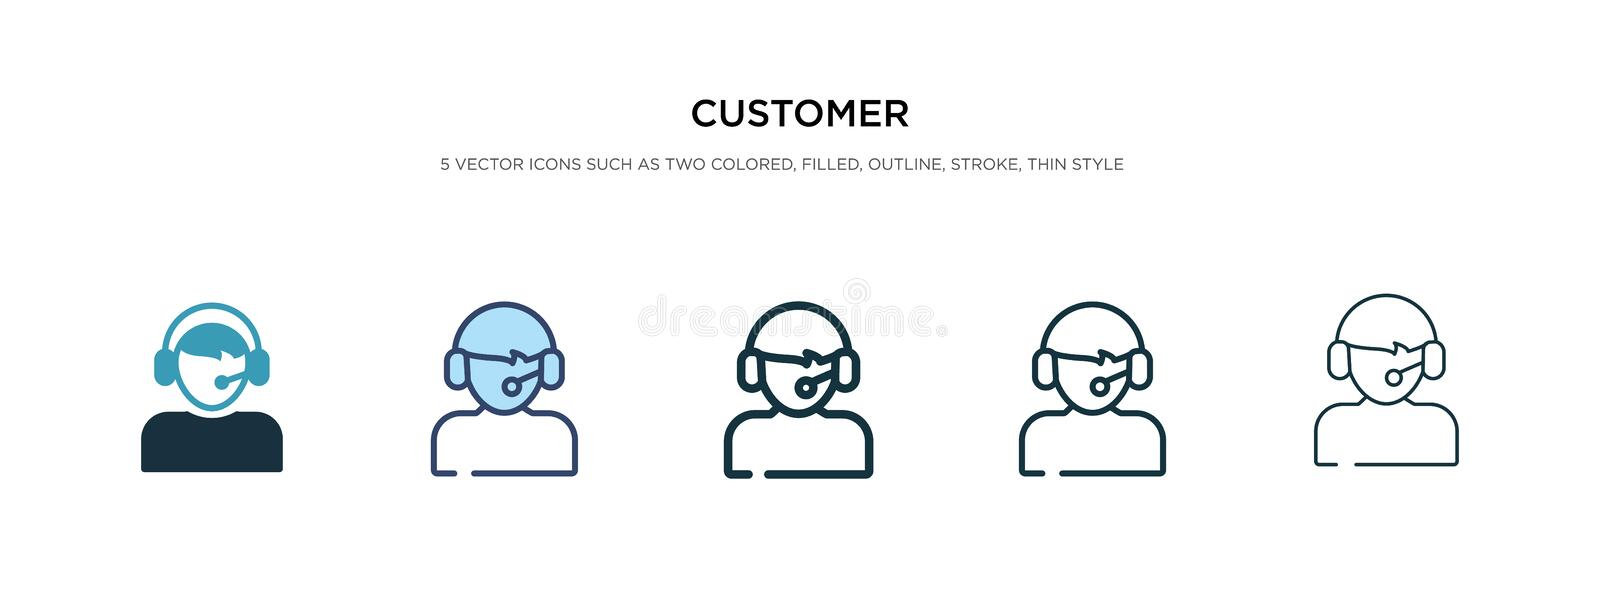 Customer icon in different style vector illustration. two colored and black customer vector icons designed in filled, outline, royalty free illustration